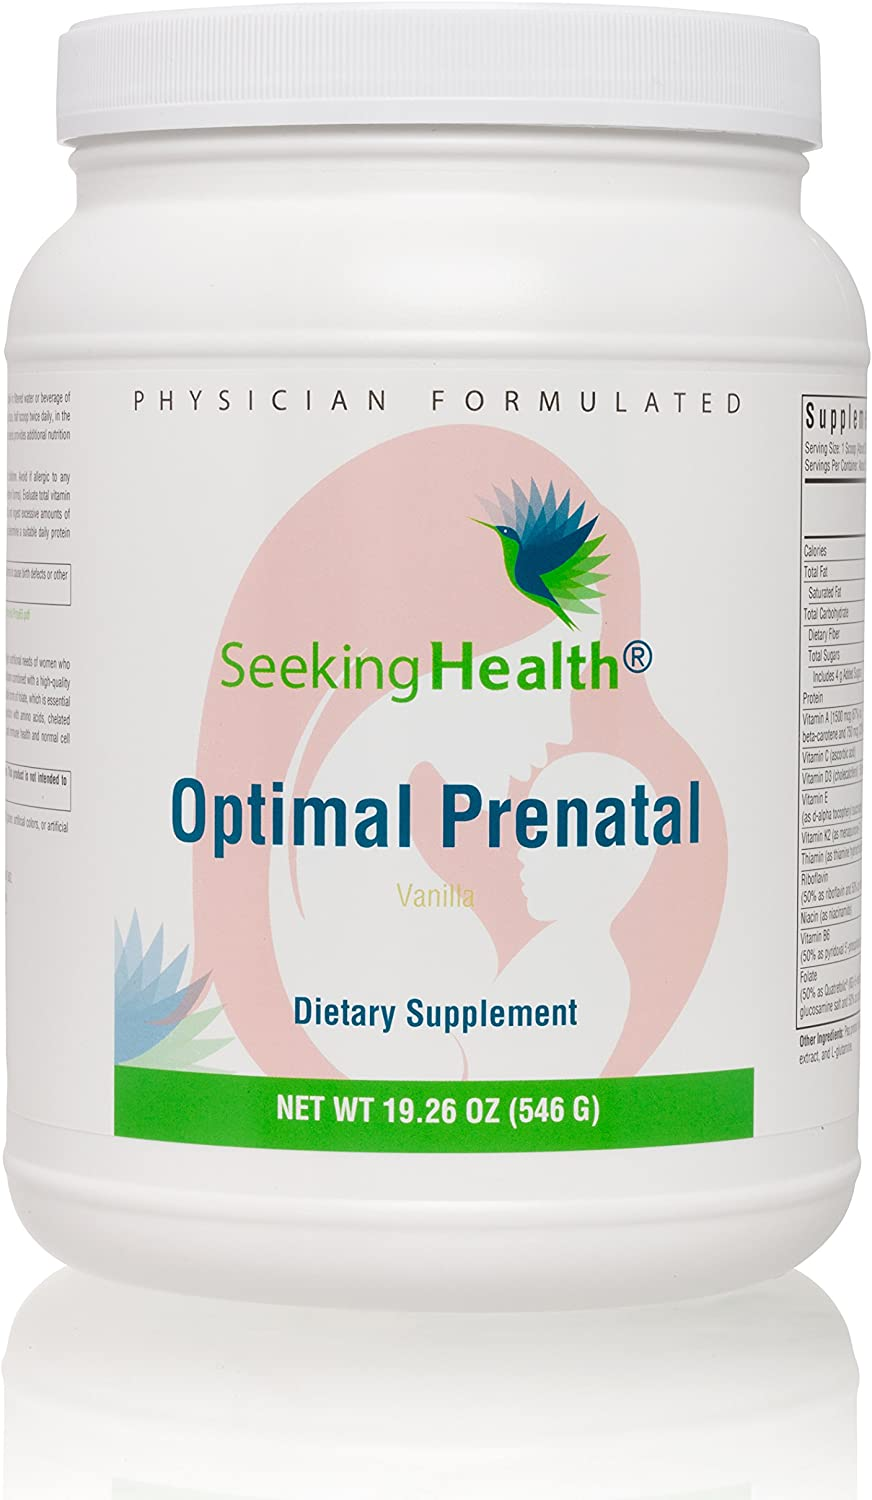 Seeking Health Optimal Prenatal Protein Powder